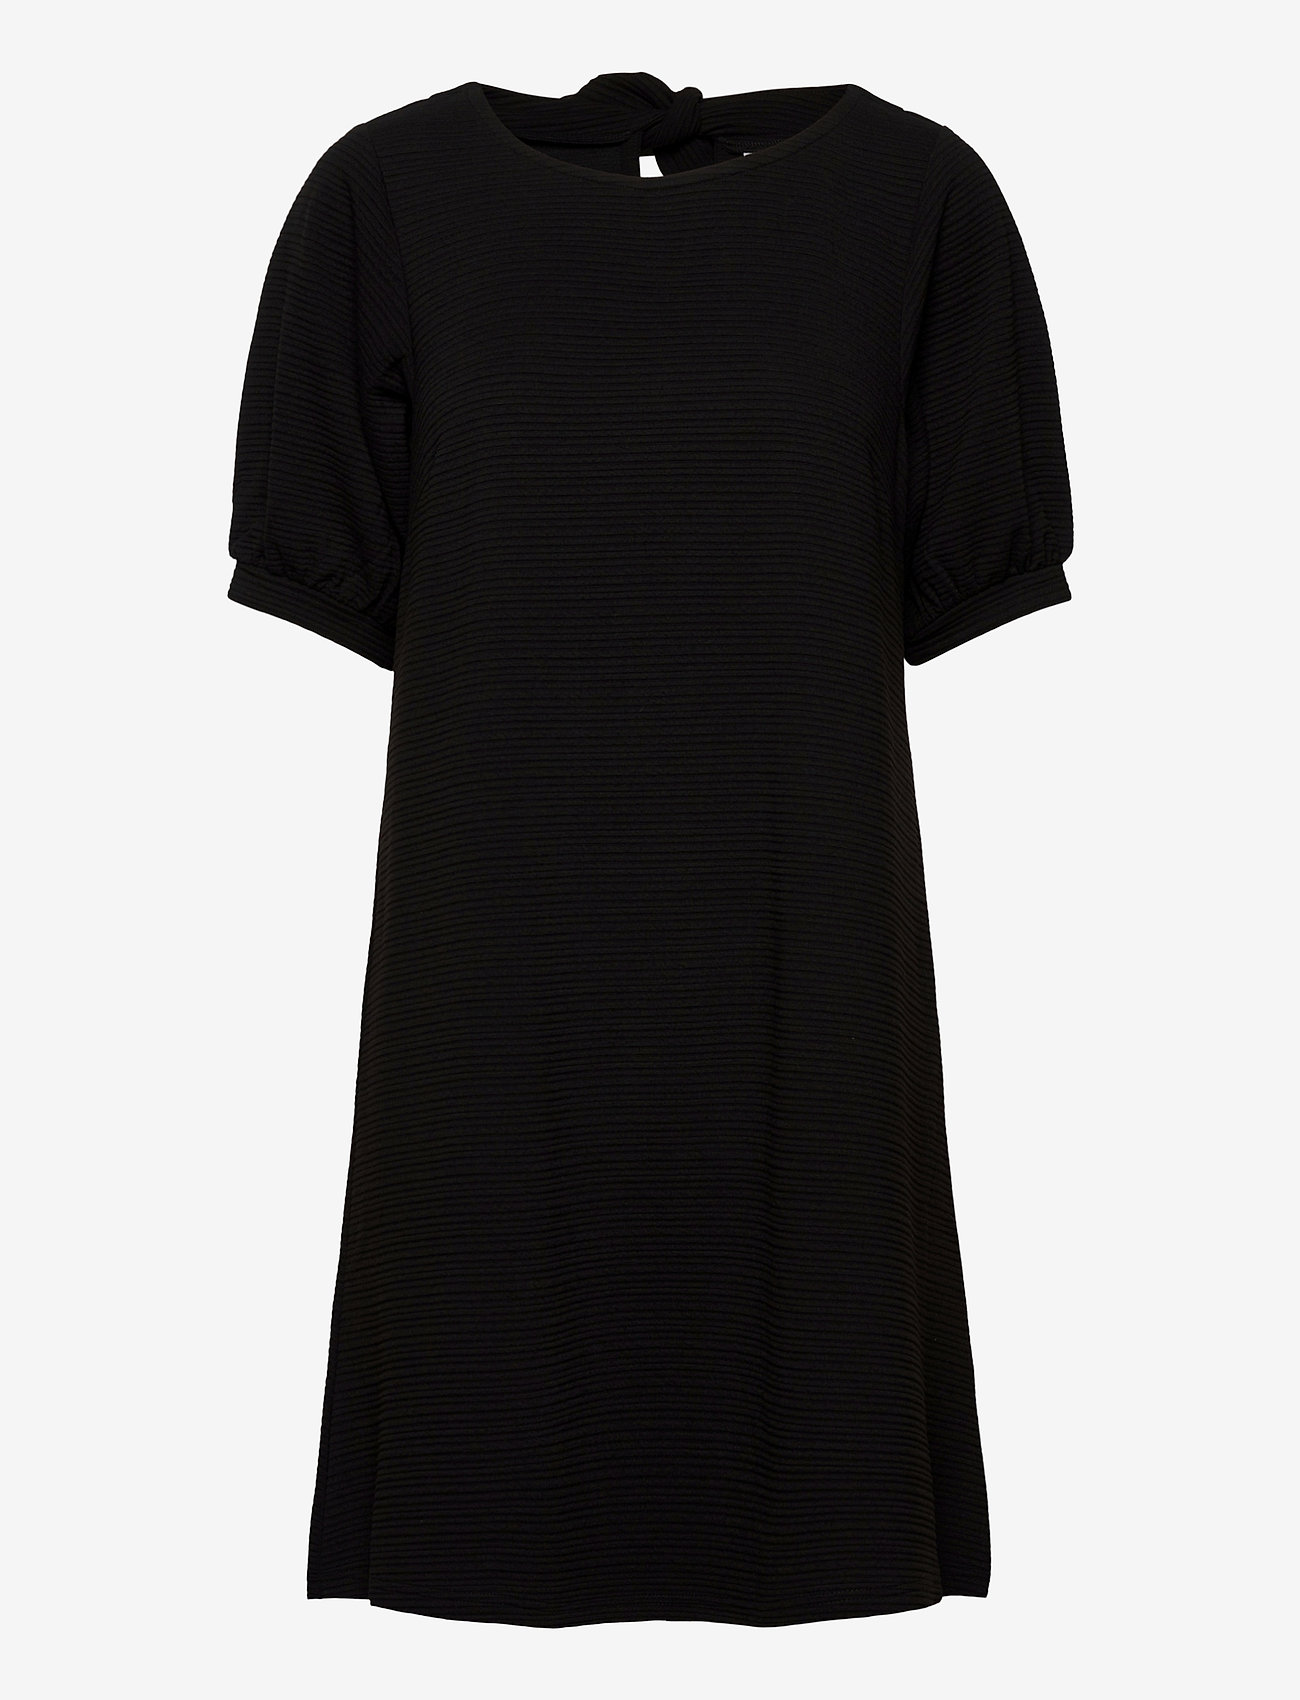 ICHI - IHKATE RIB DR - everyday dresses - black - 0